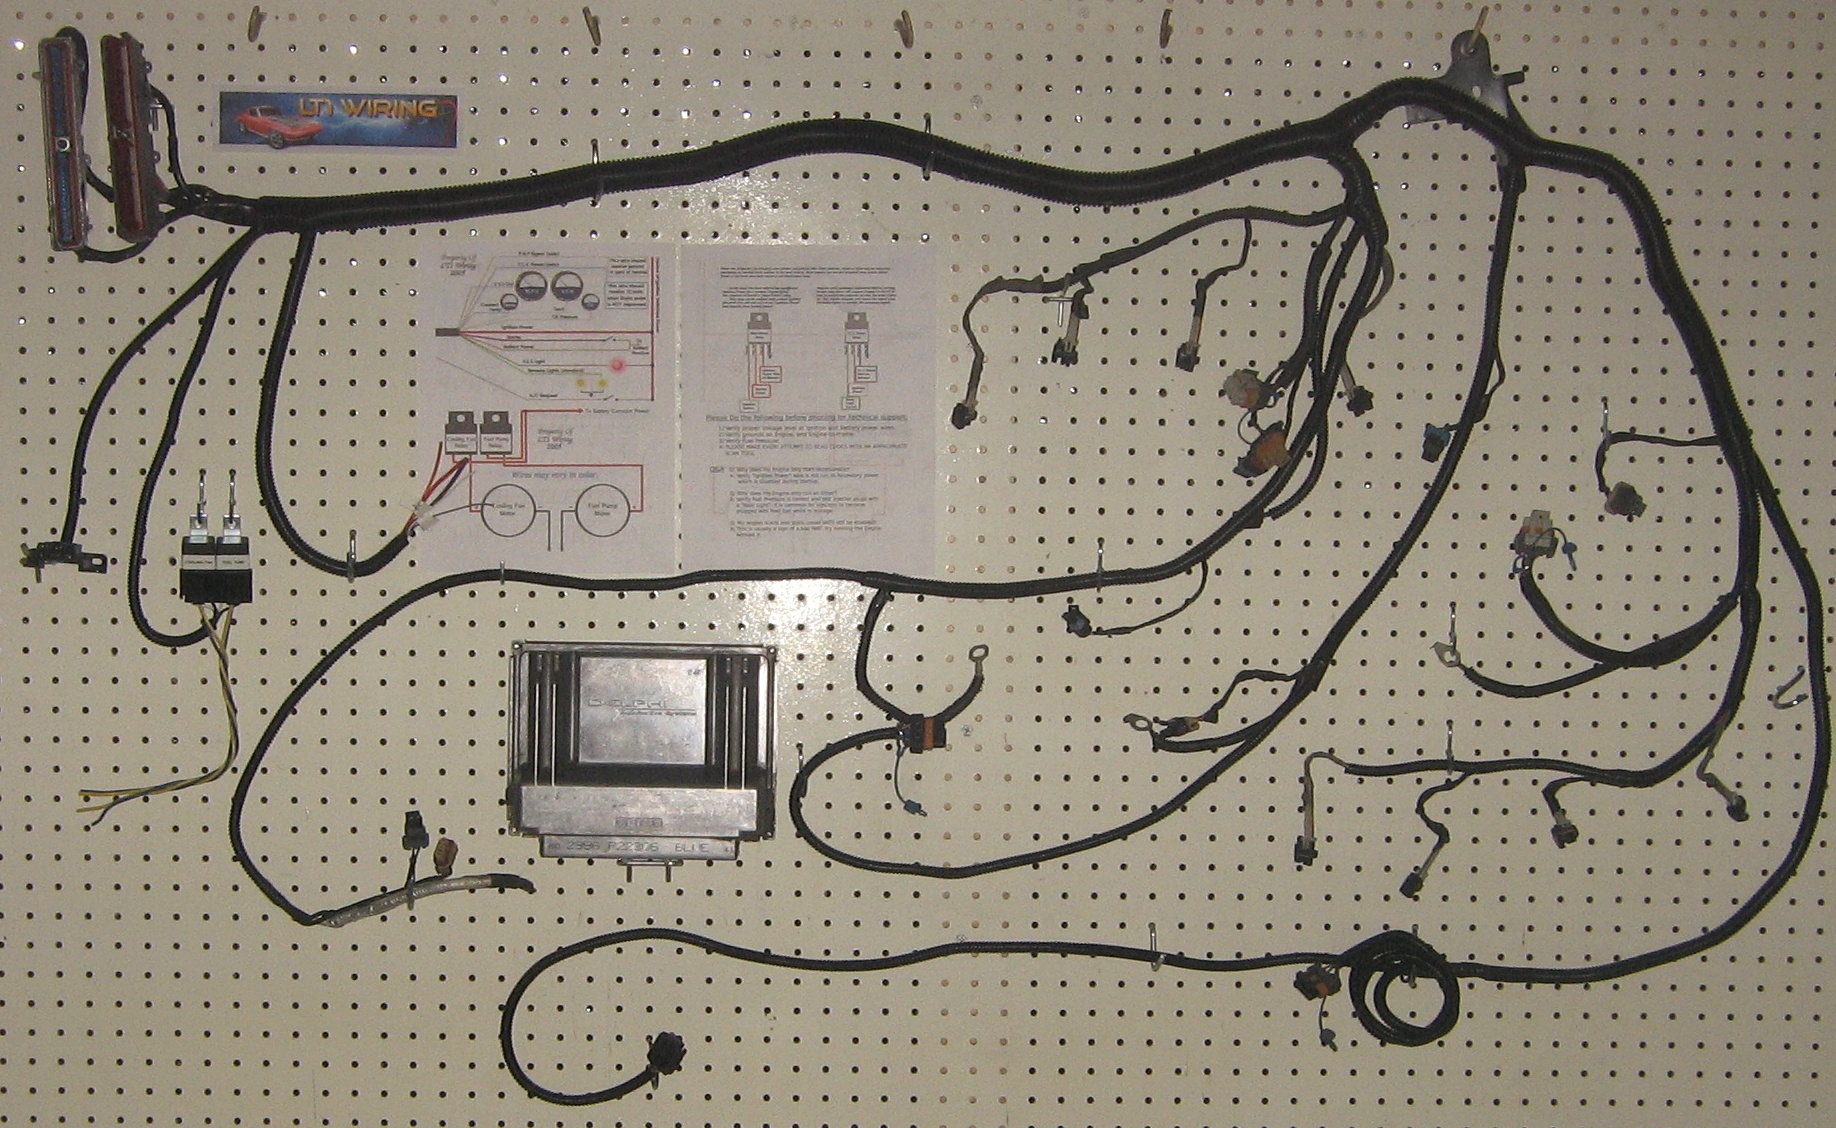 Lt1 Wiring Conversion Start Building A Diagram Engine Swap Harness Ls And Pcm Stand Alone Modification Ebay Rh Com